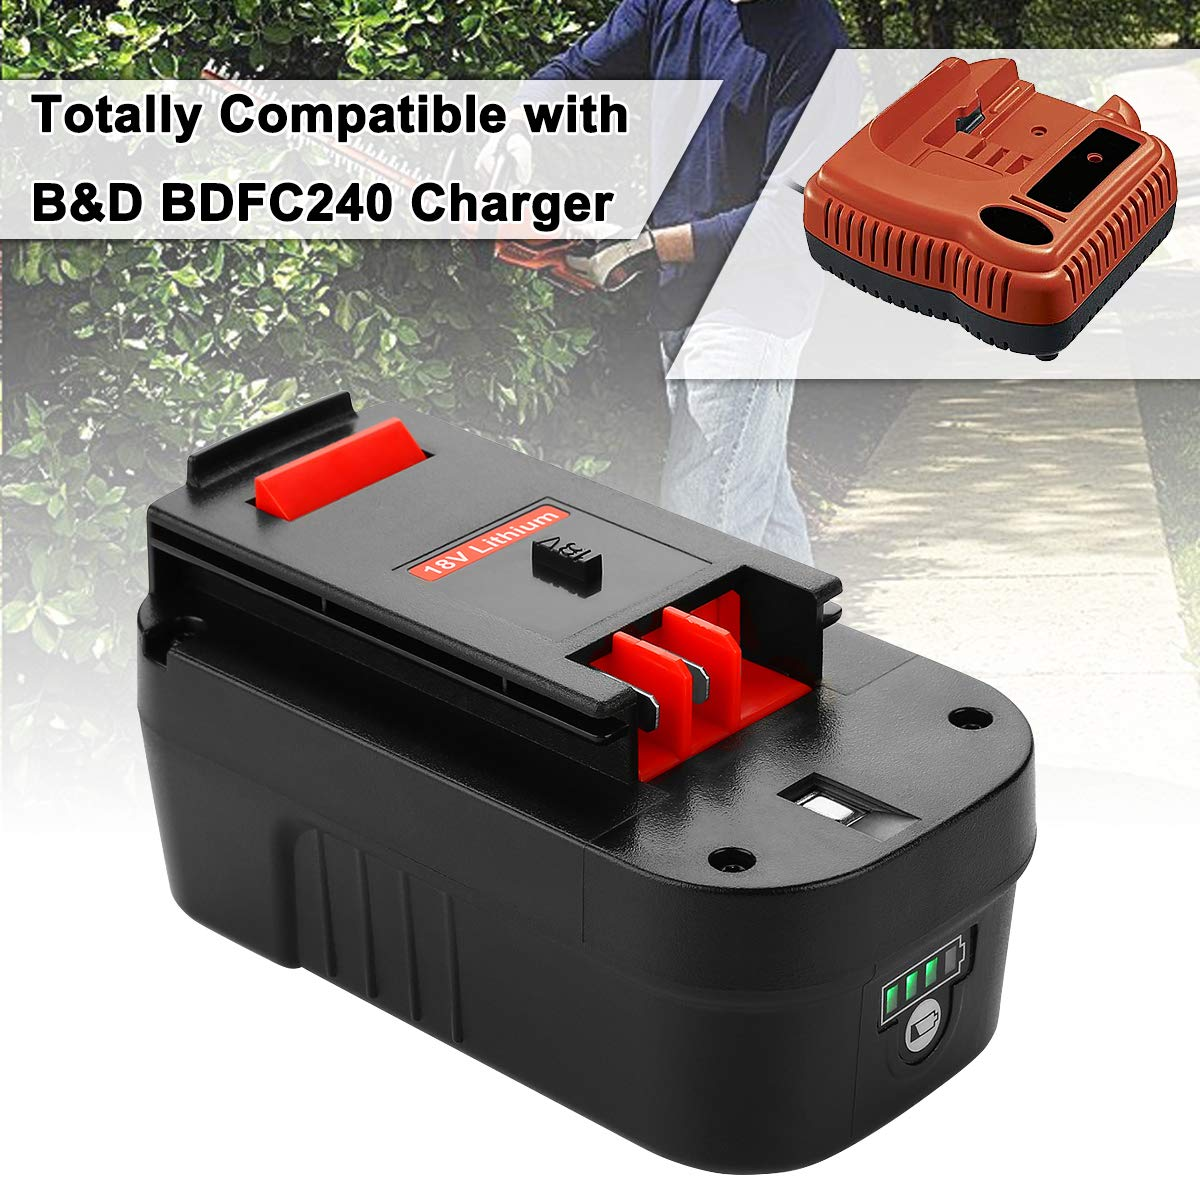 Energup Upgraded 5000mAh Lithium Black & Decker 18V Replacement Battery for HPB18 HPB18-OPE 244760-00 A1718 FS18FL FSB18 Firestorm Black and Decker 18 Volt Battery by Energup (Image #5)